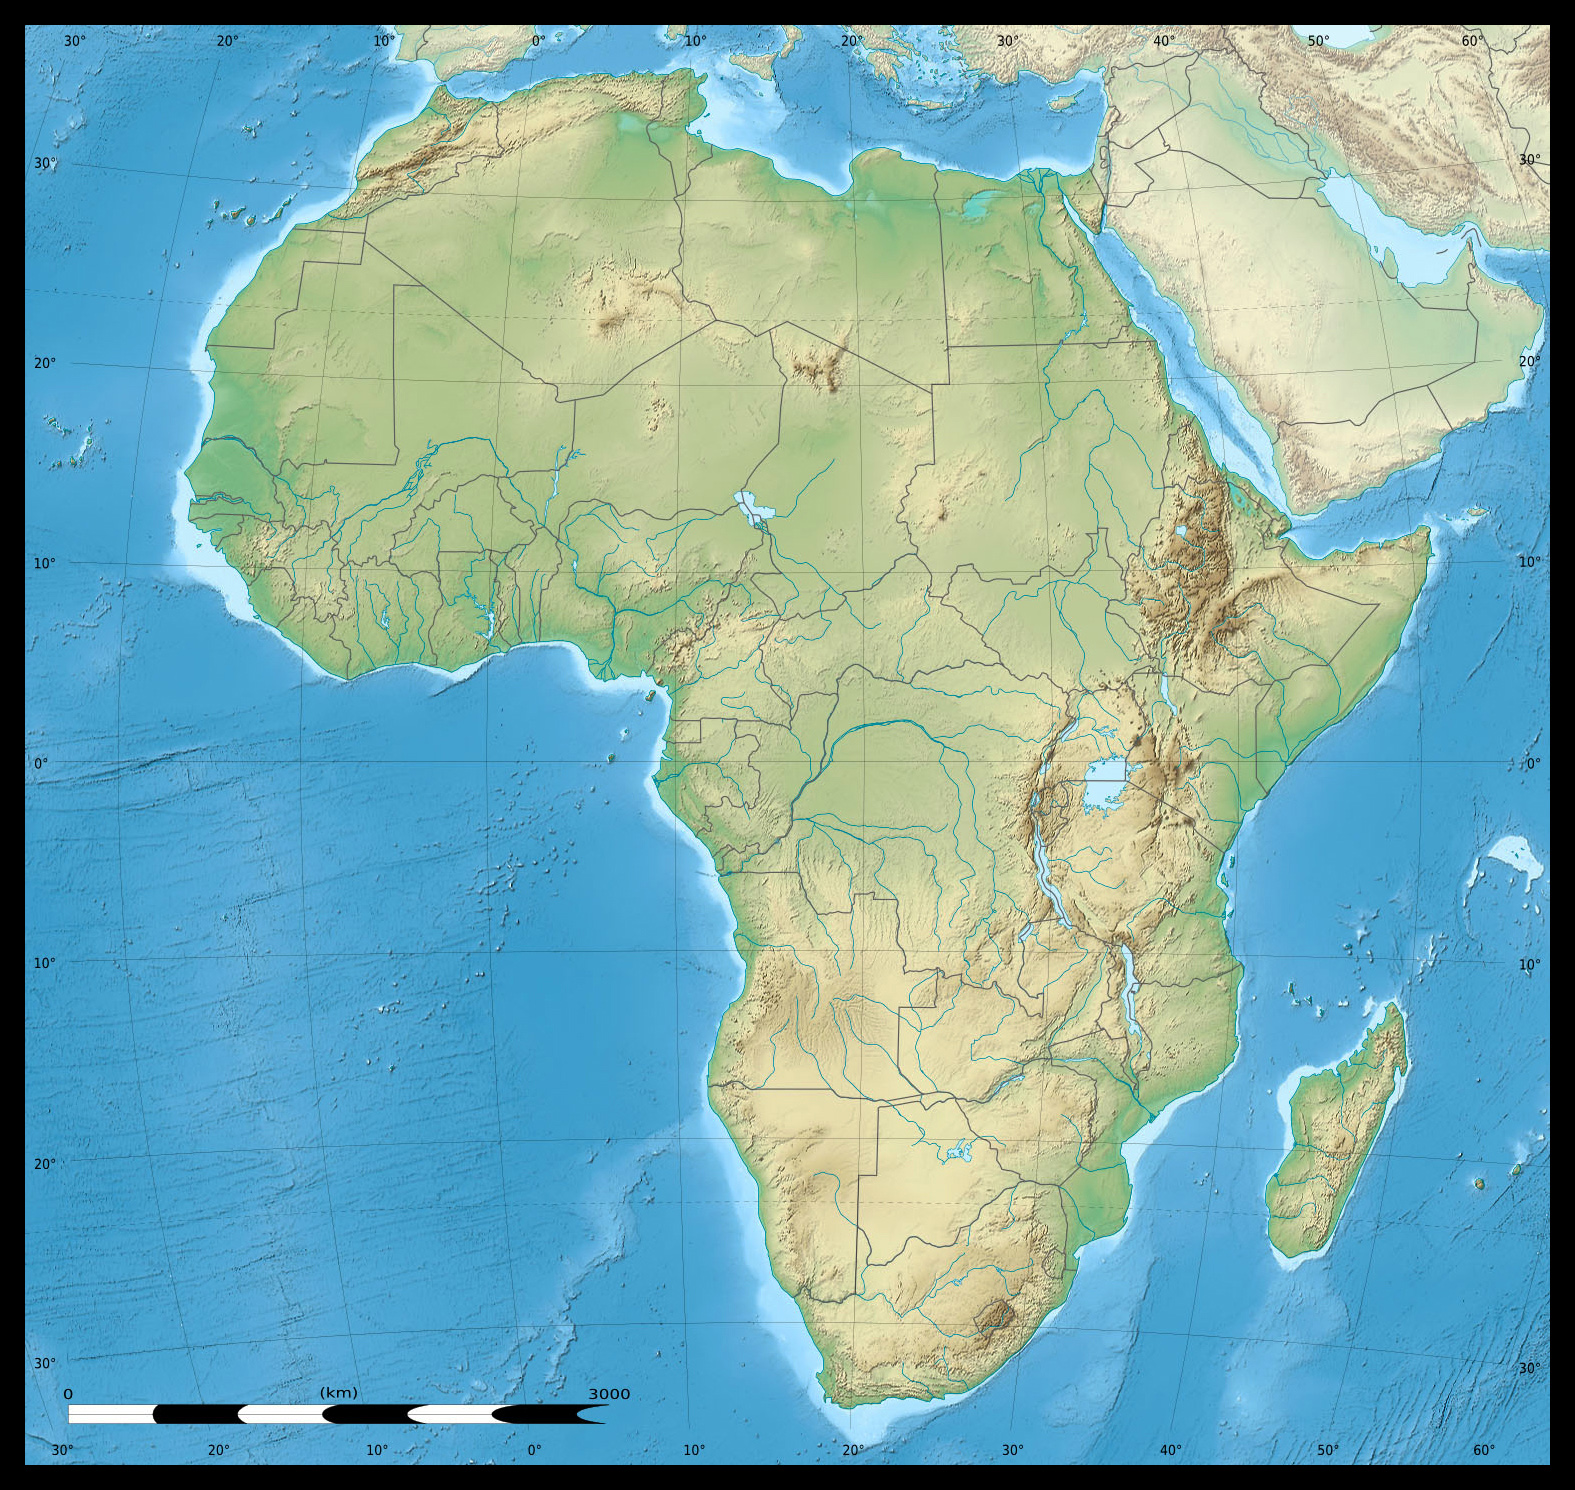 Elevation Map Of Africa With Key.Maps Of Africa And African Countries Political Maps